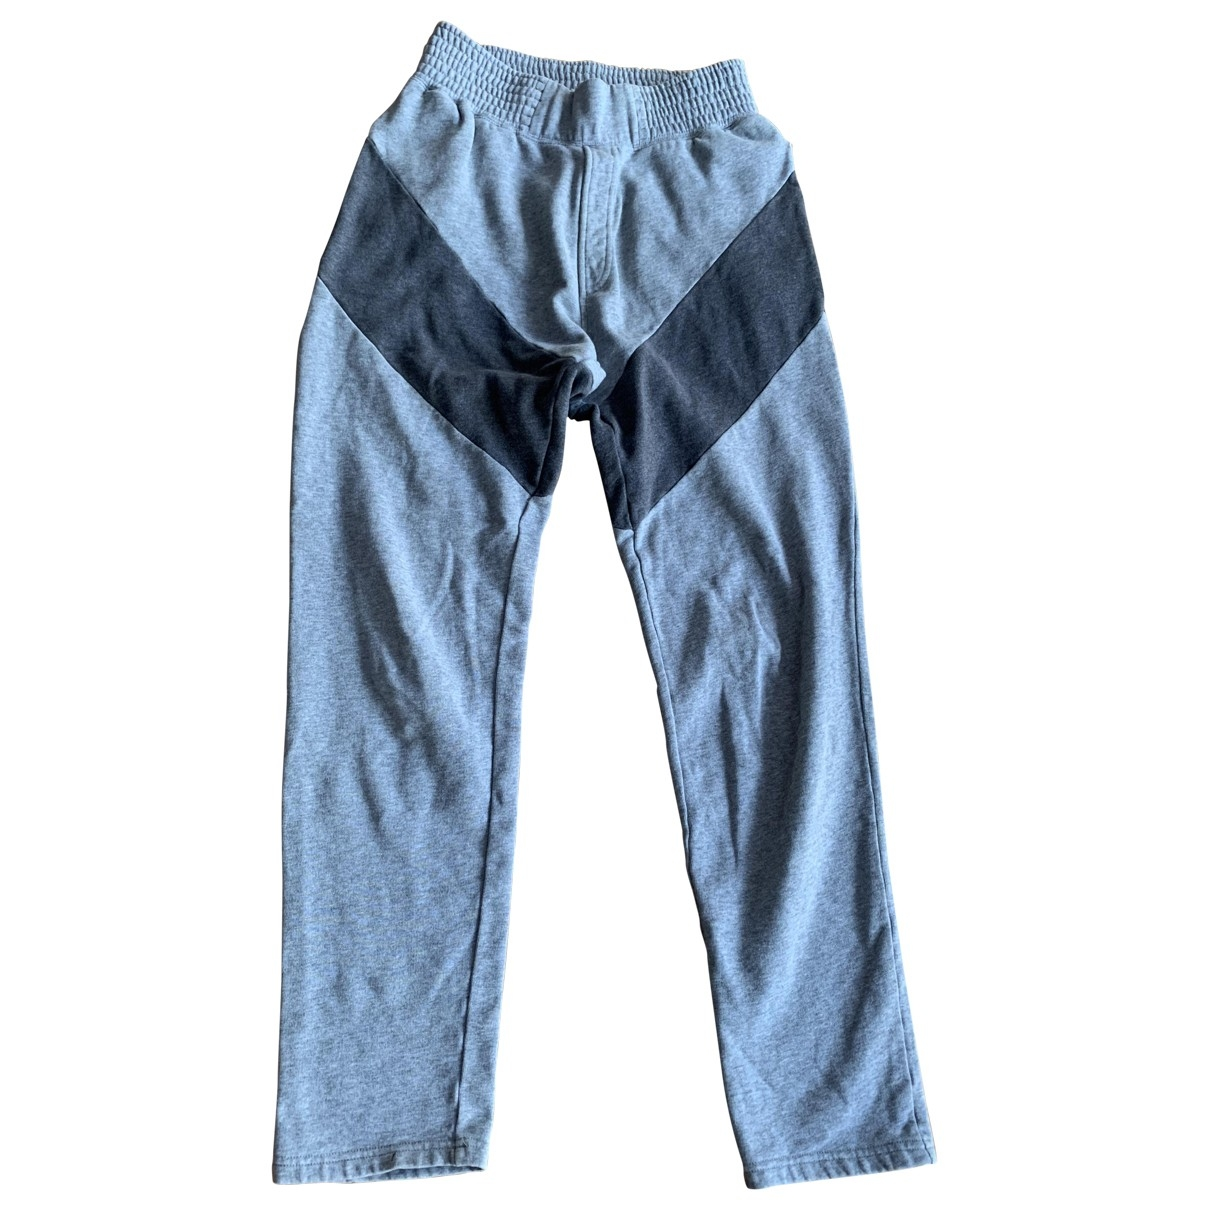 Givenchy \N Grey Cotton Trousers for Men XS International